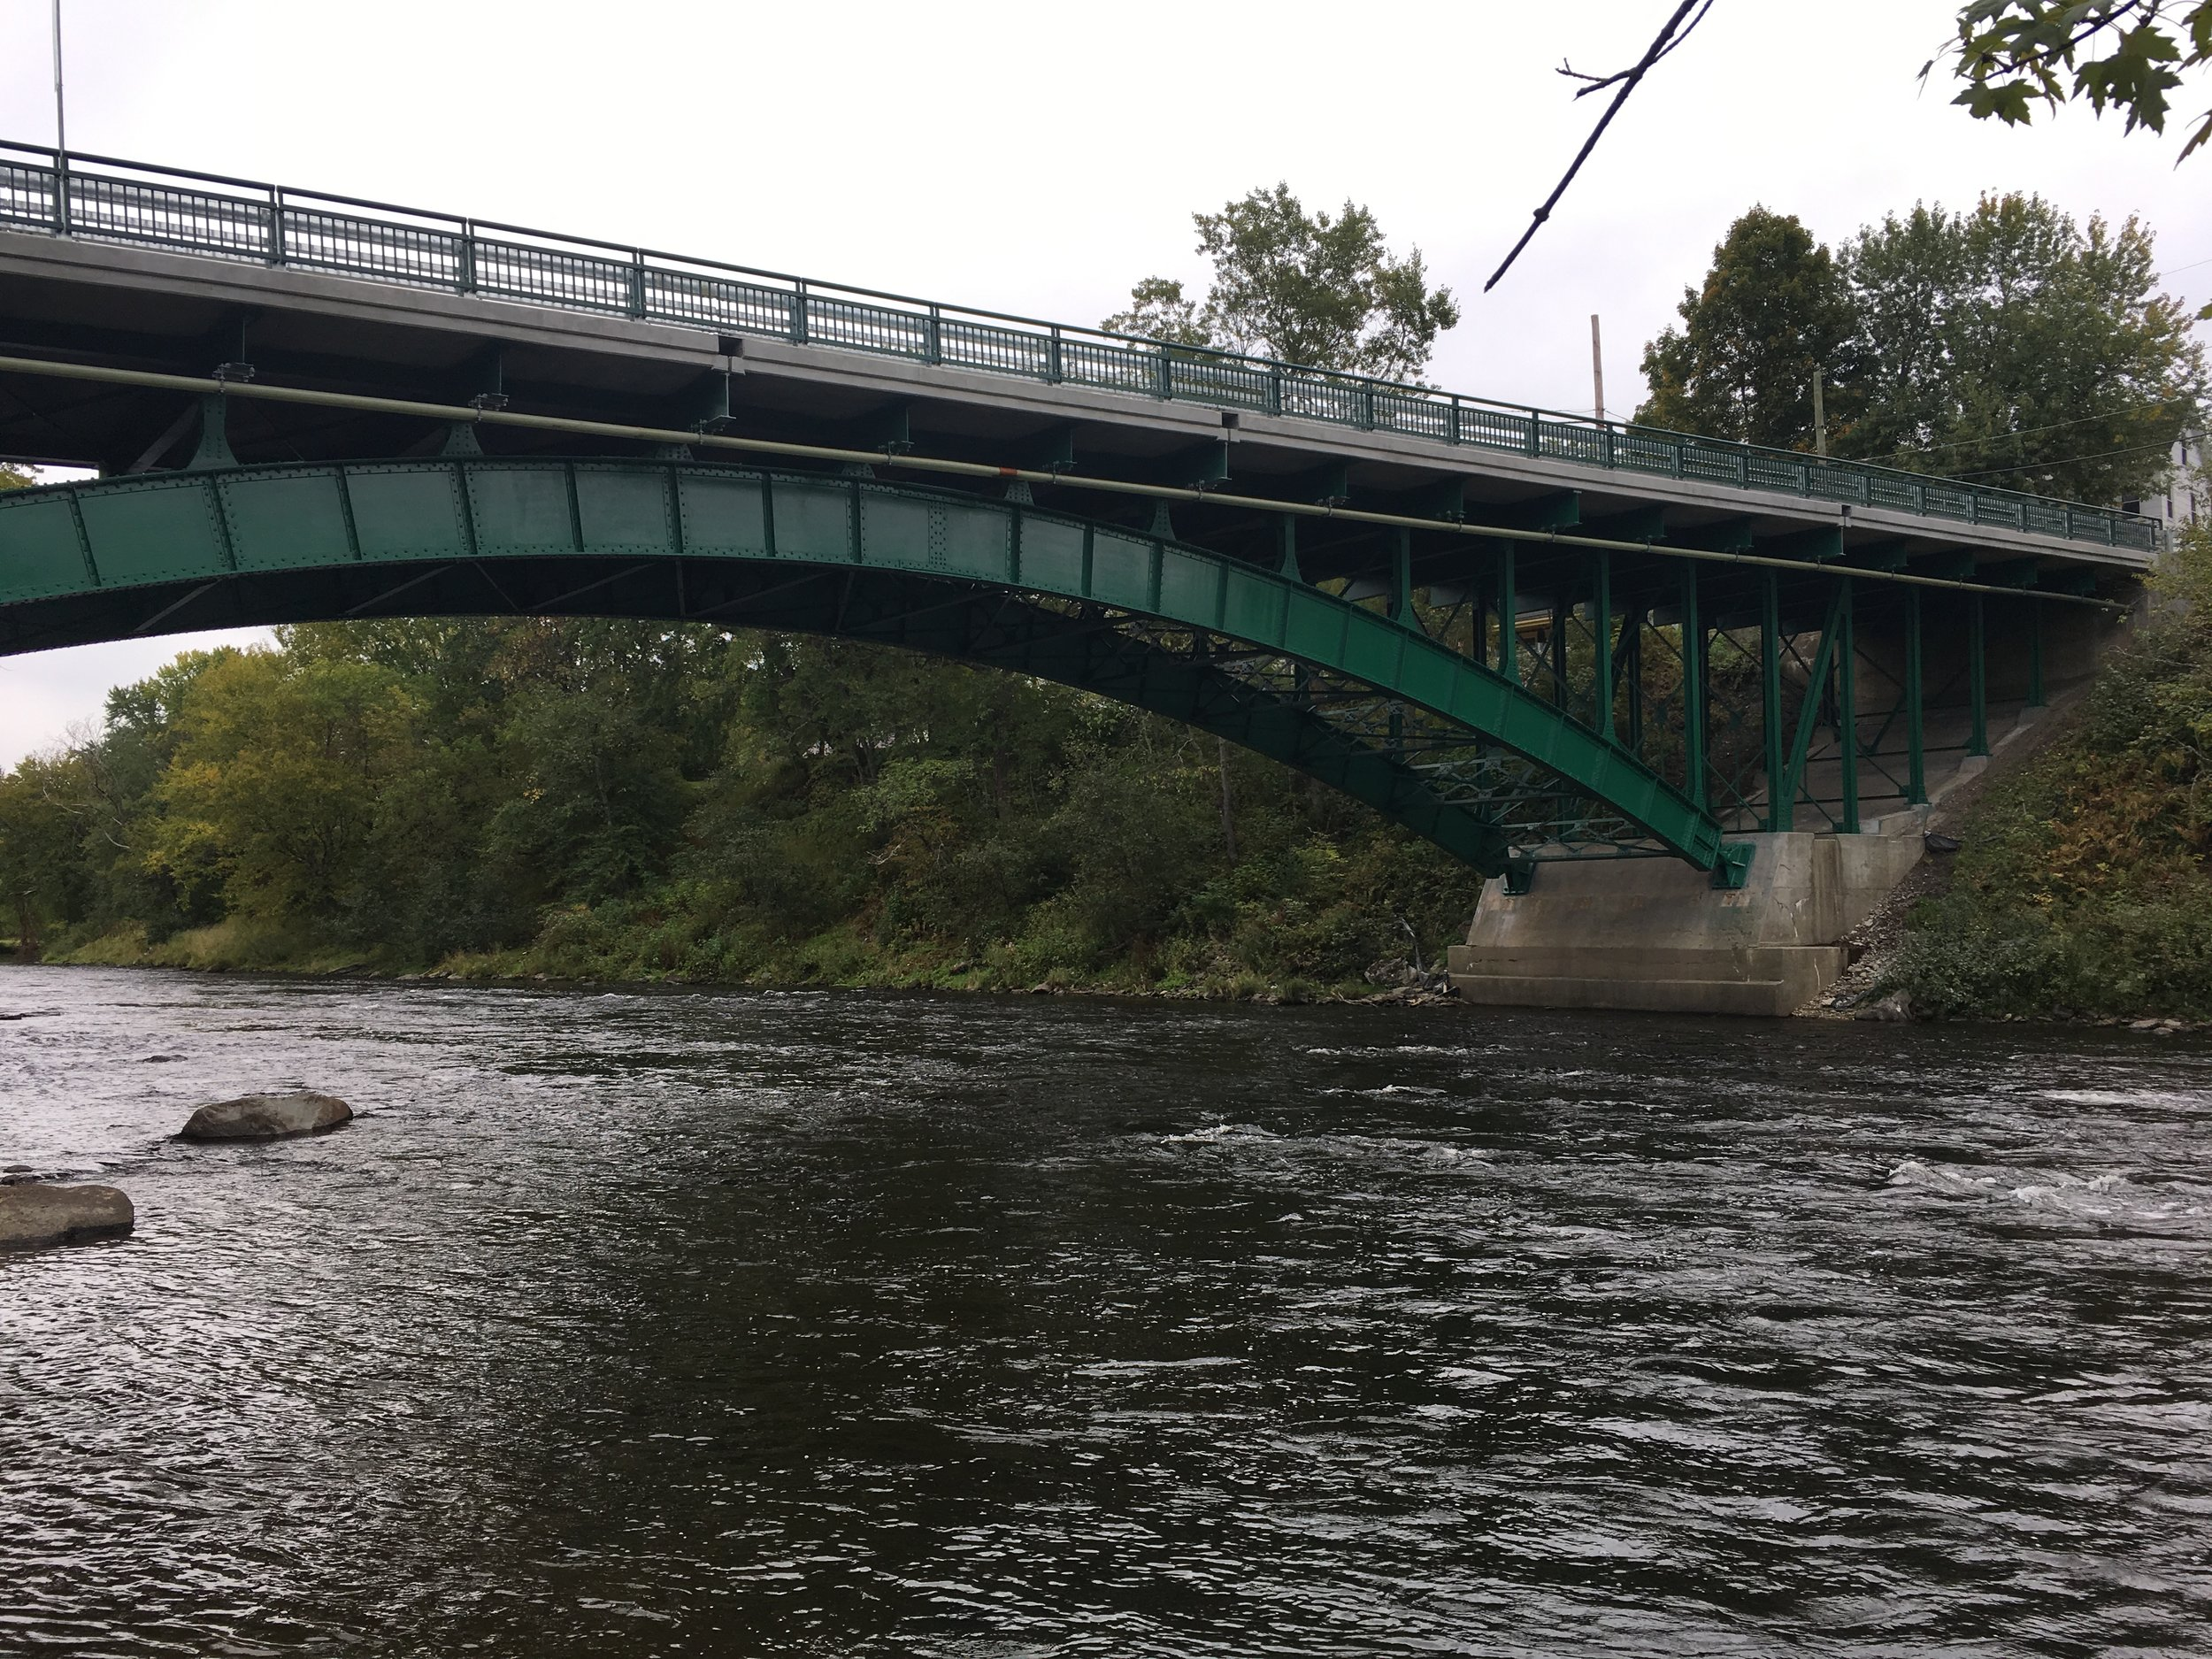 The Stewartstown Bridge, which connects its namesake town to Beecher Falls, Vermont over the Connecticut River, was one of the few remaining metal truss buildings in the state when it was placed on the Preservation Alliance's  Seven to Save  list in 2008. In 2017, the State of New Hampshire Department of Transportation launched an extensive rehabilitation process that has restored the 1931 bridge to its former glory. (Photo courtesy of NH DOT.)